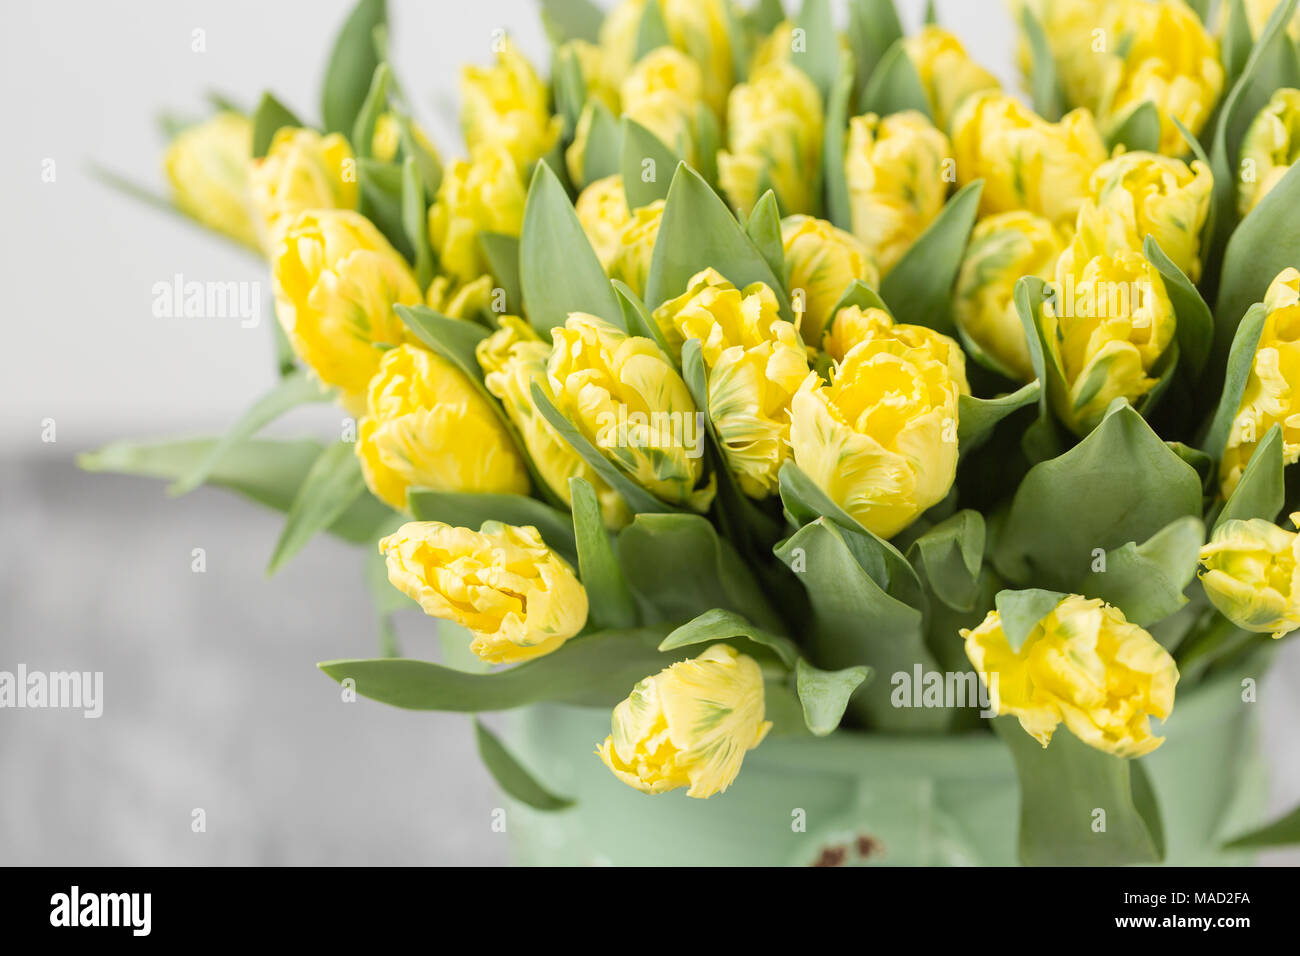 Tulips Of Yellow Color In Green Vase Big Buds Of Multicoloured